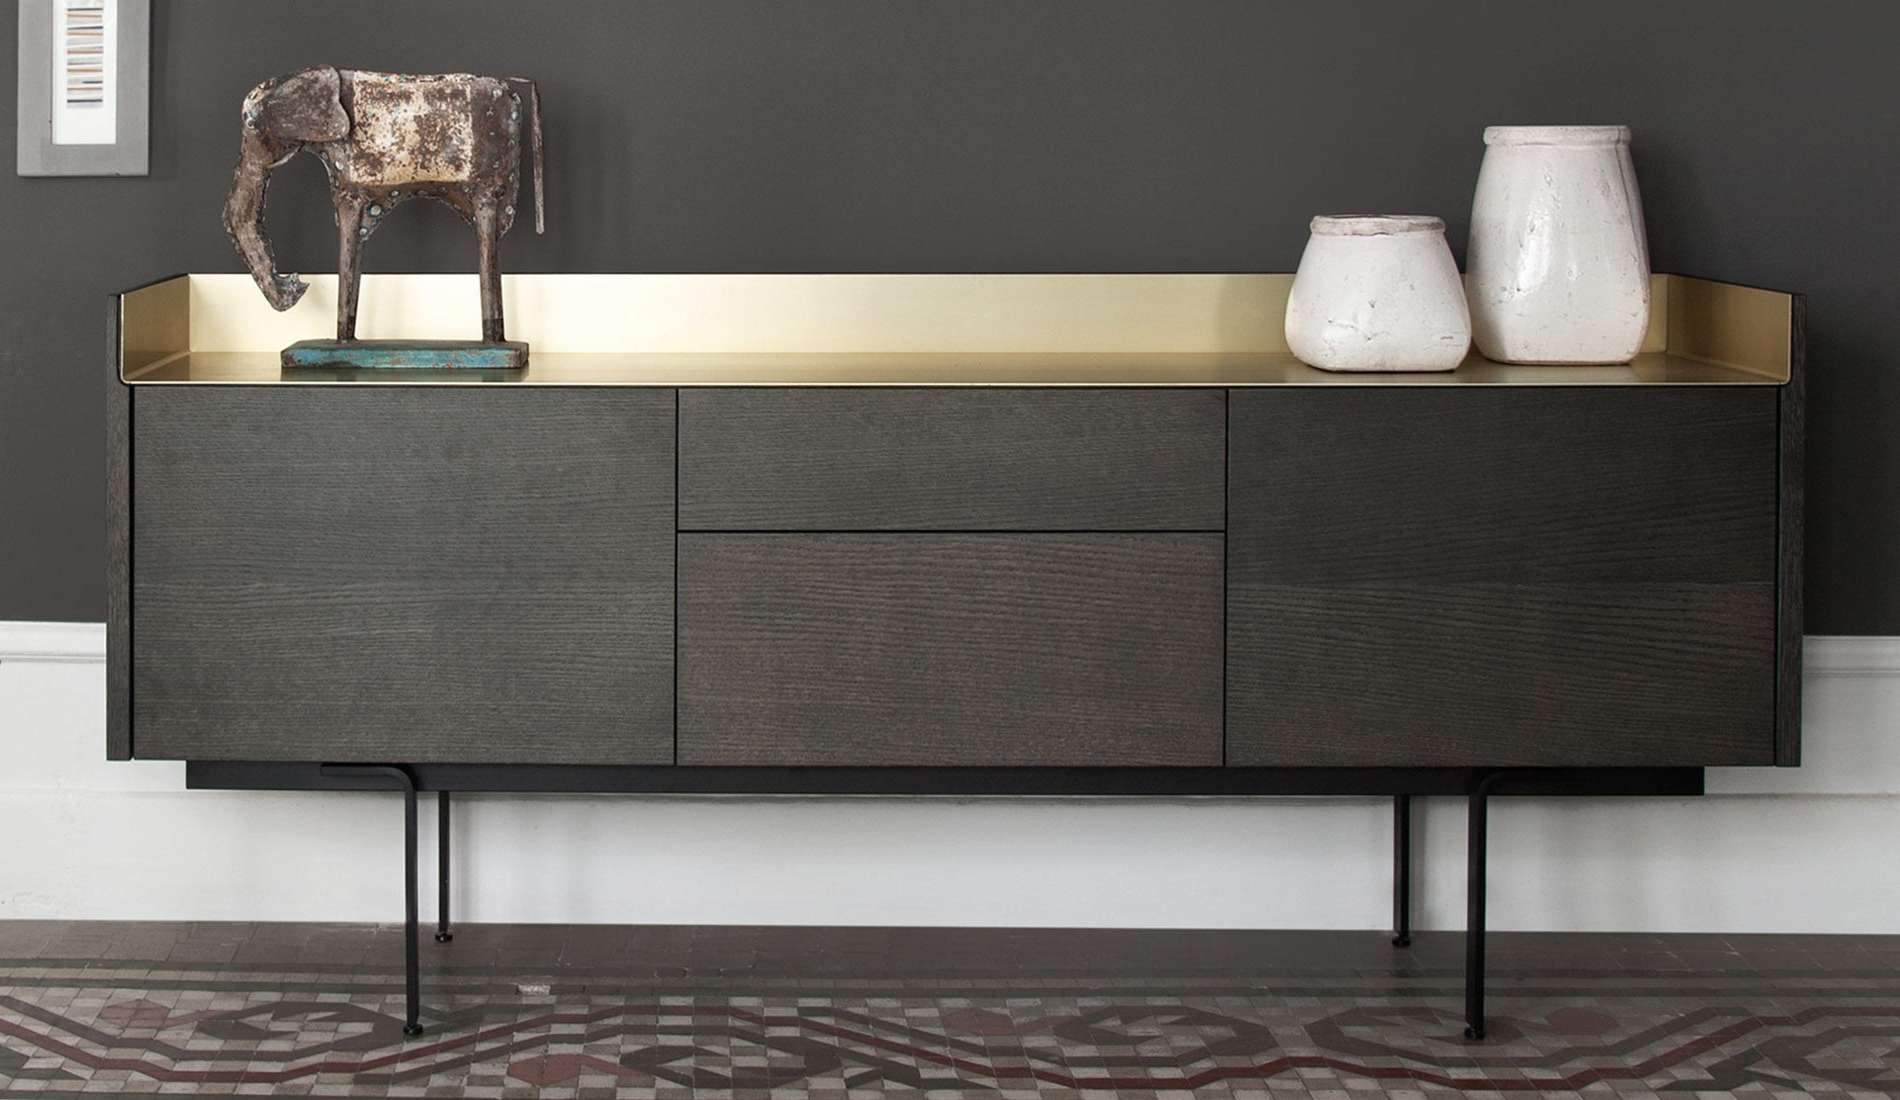 Punt Stockholm 3B Sideboard | Dopo Domani Intended For Stockholm Sideboards (View 6 of 20)